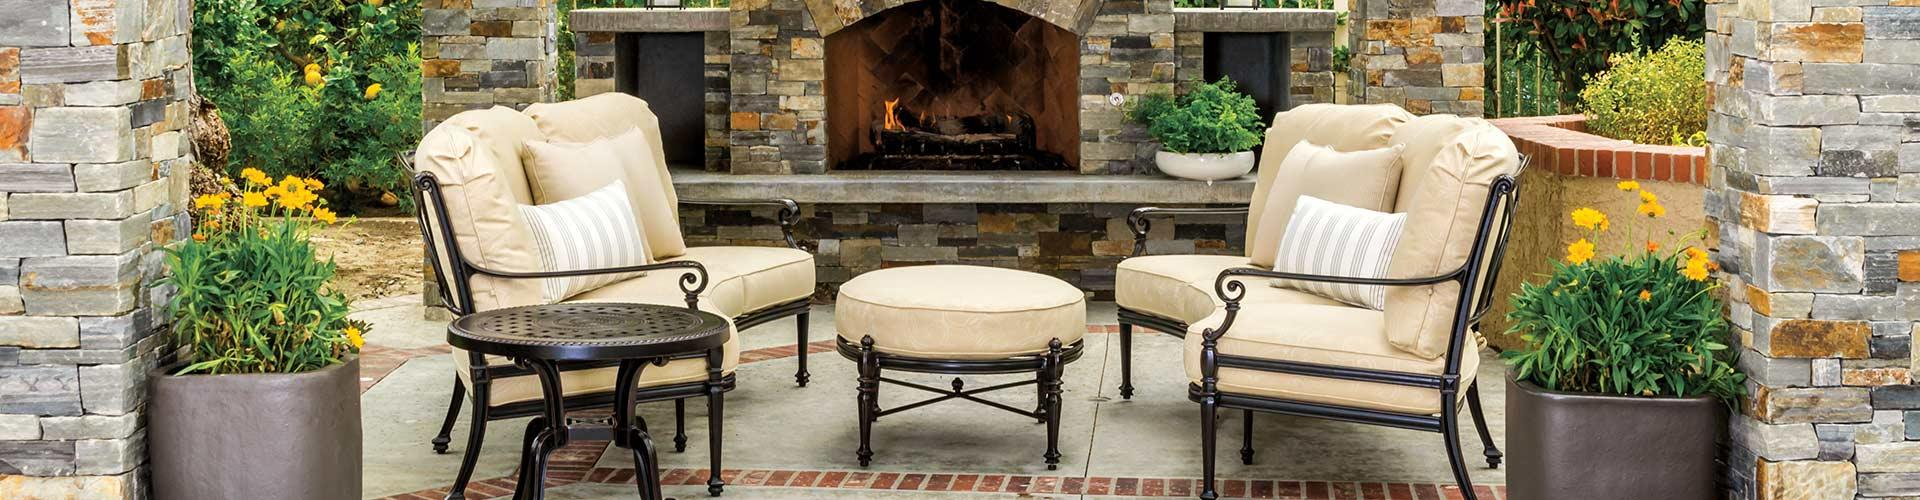 OUTDOOR LIVING • FURNITURE • FIREPLACES • KITCHENS